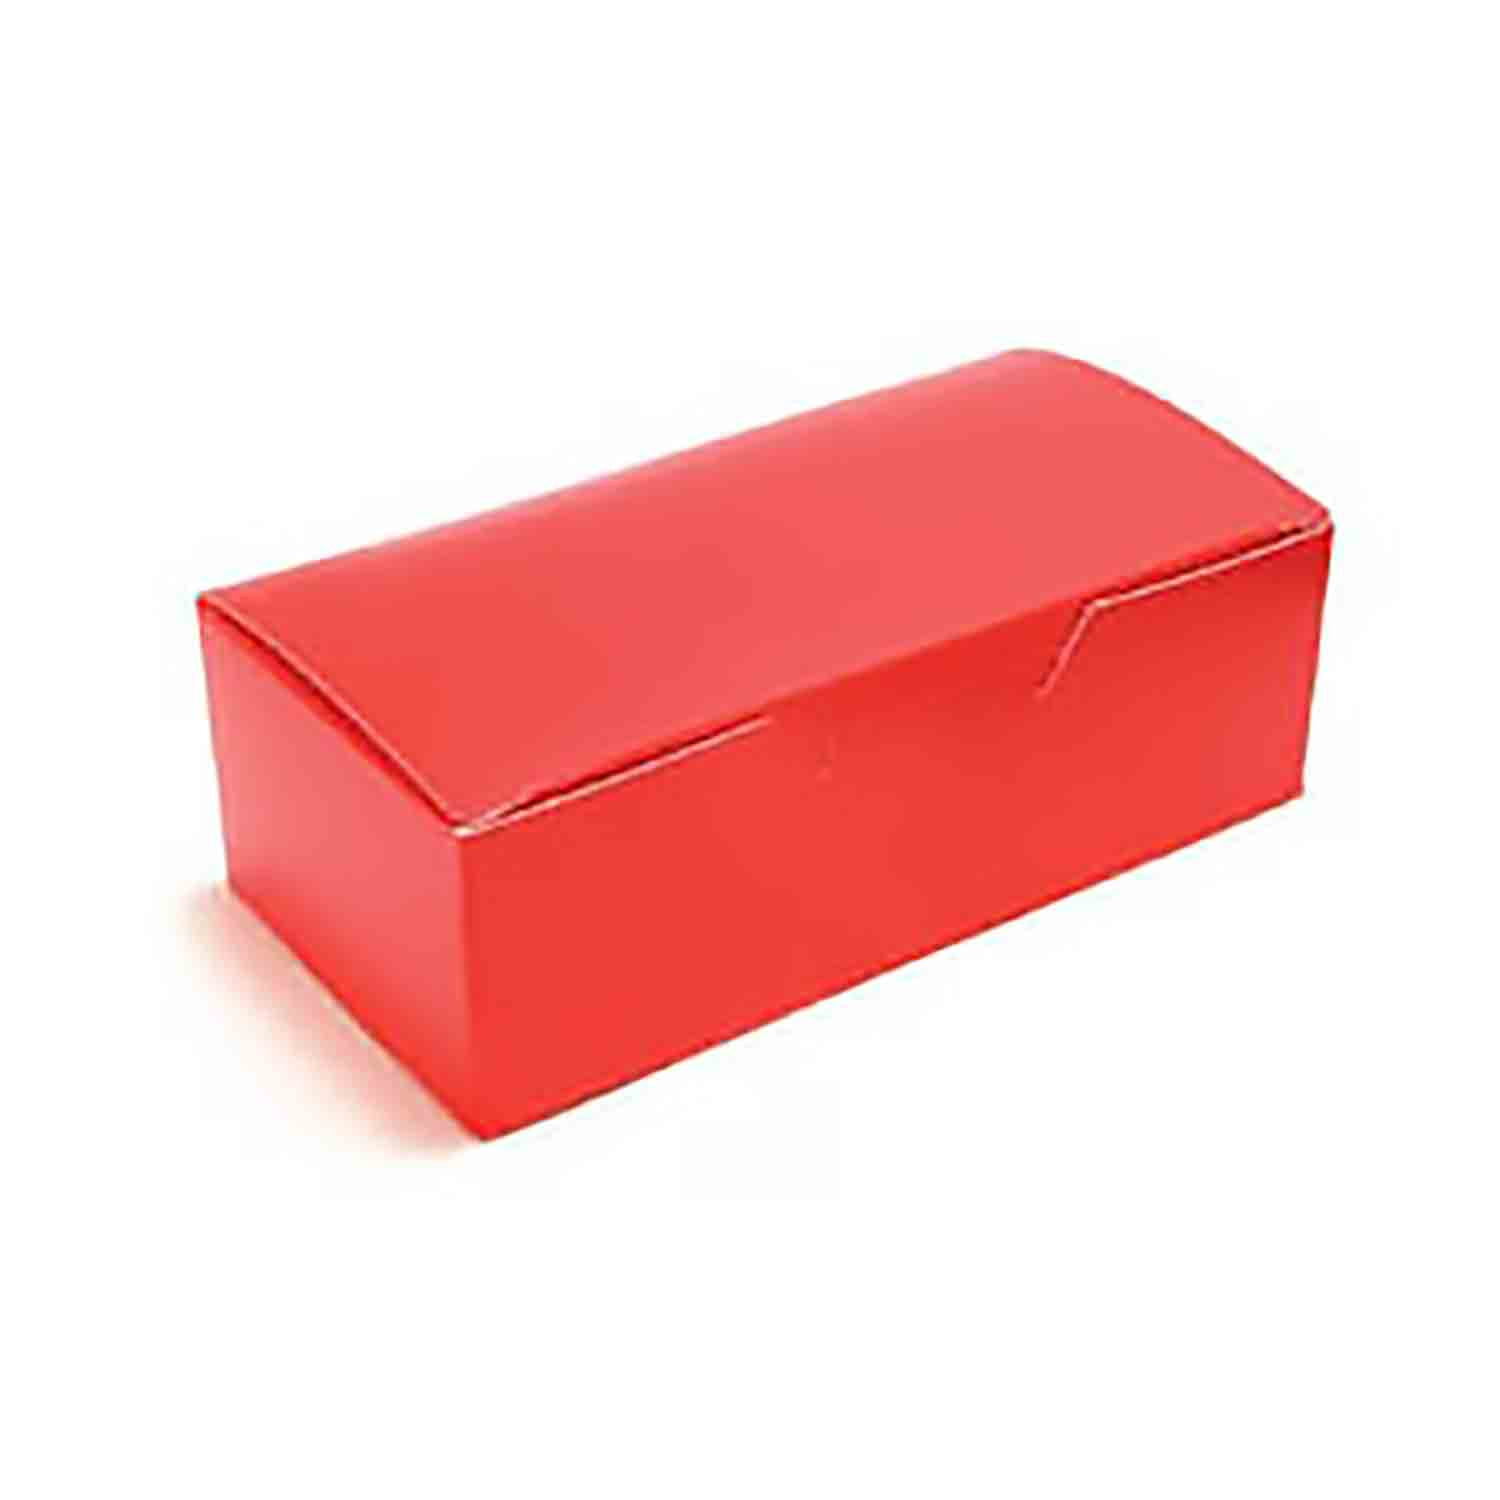 1/2 lb. Red Candy Box